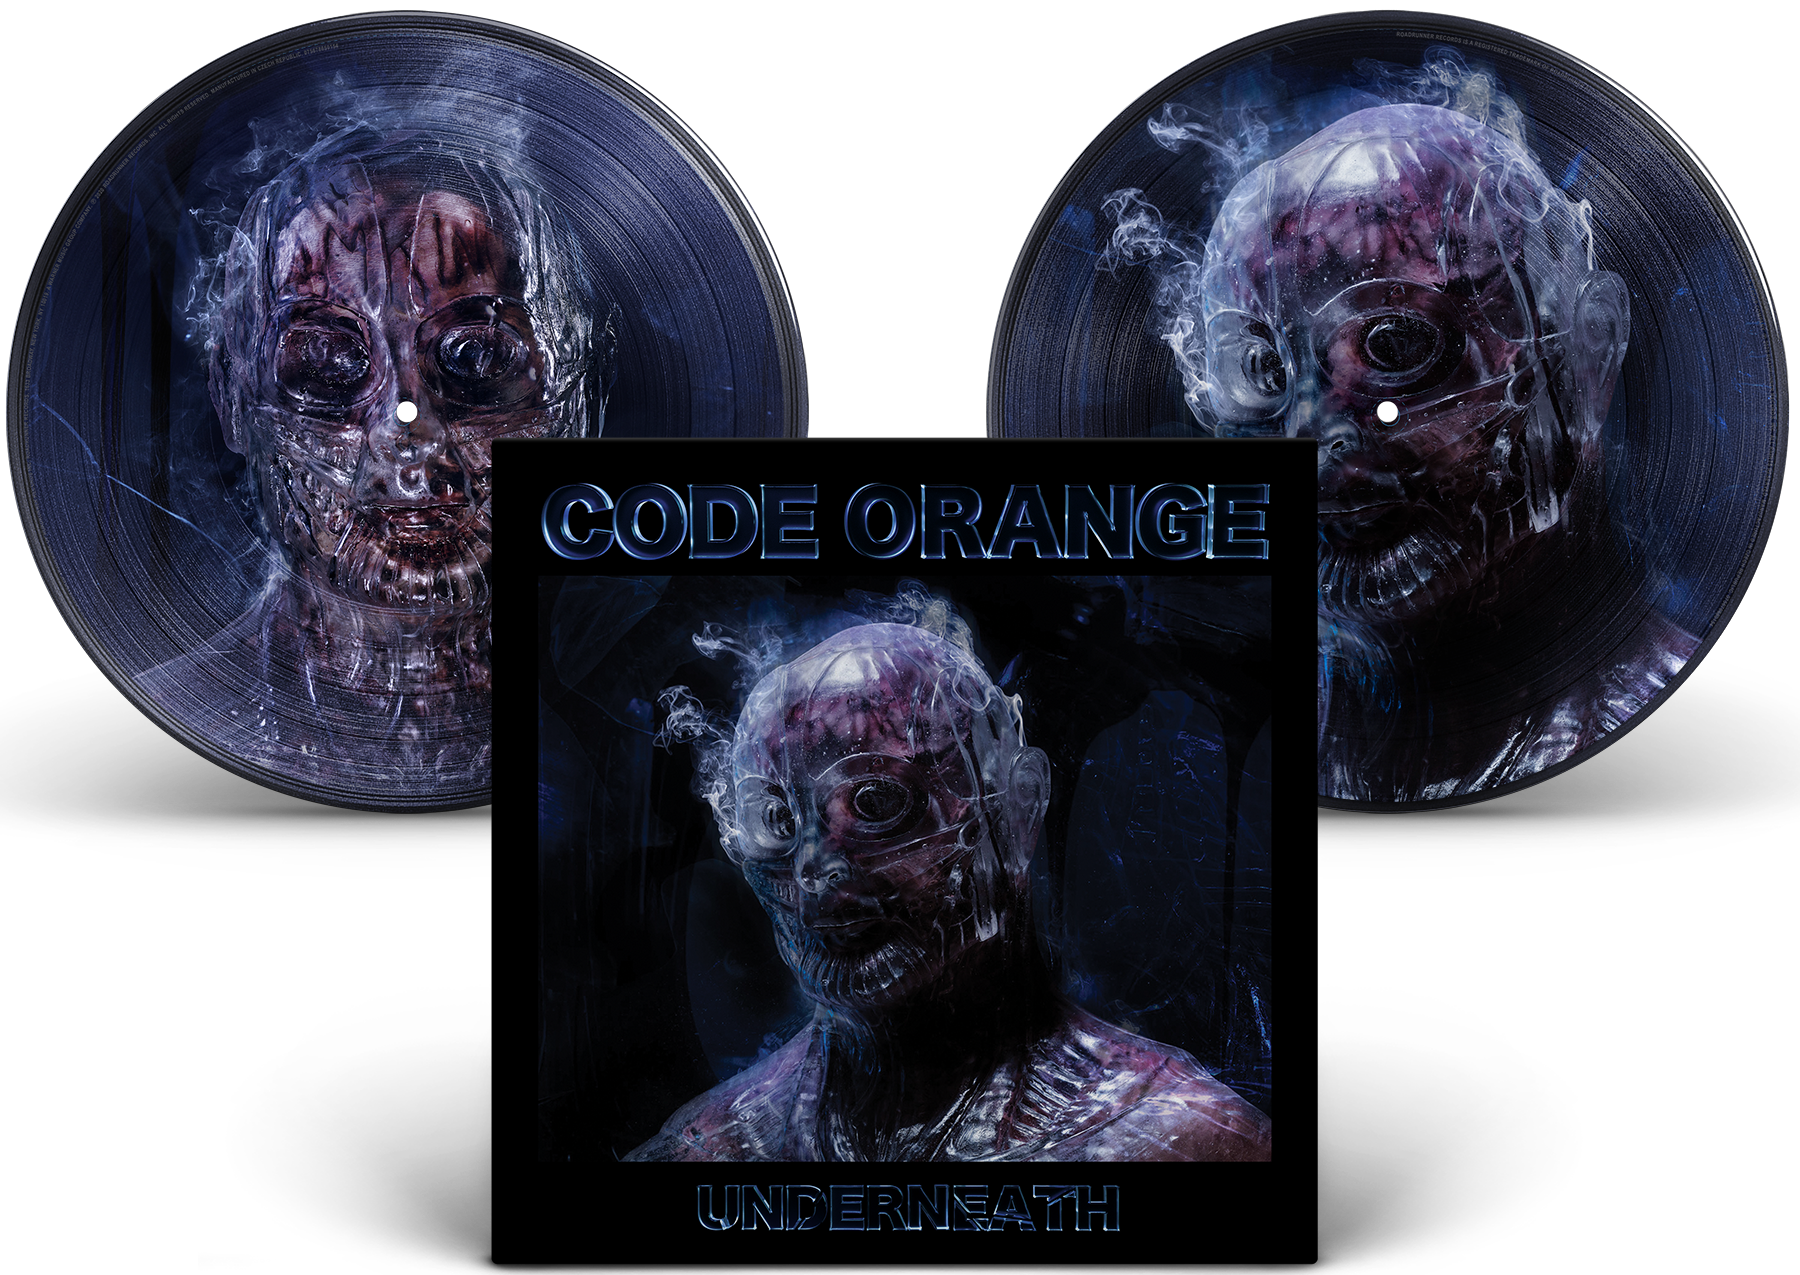 'Underneath' THE CUTTER (picture disc) EXCLUSIVE VINYL